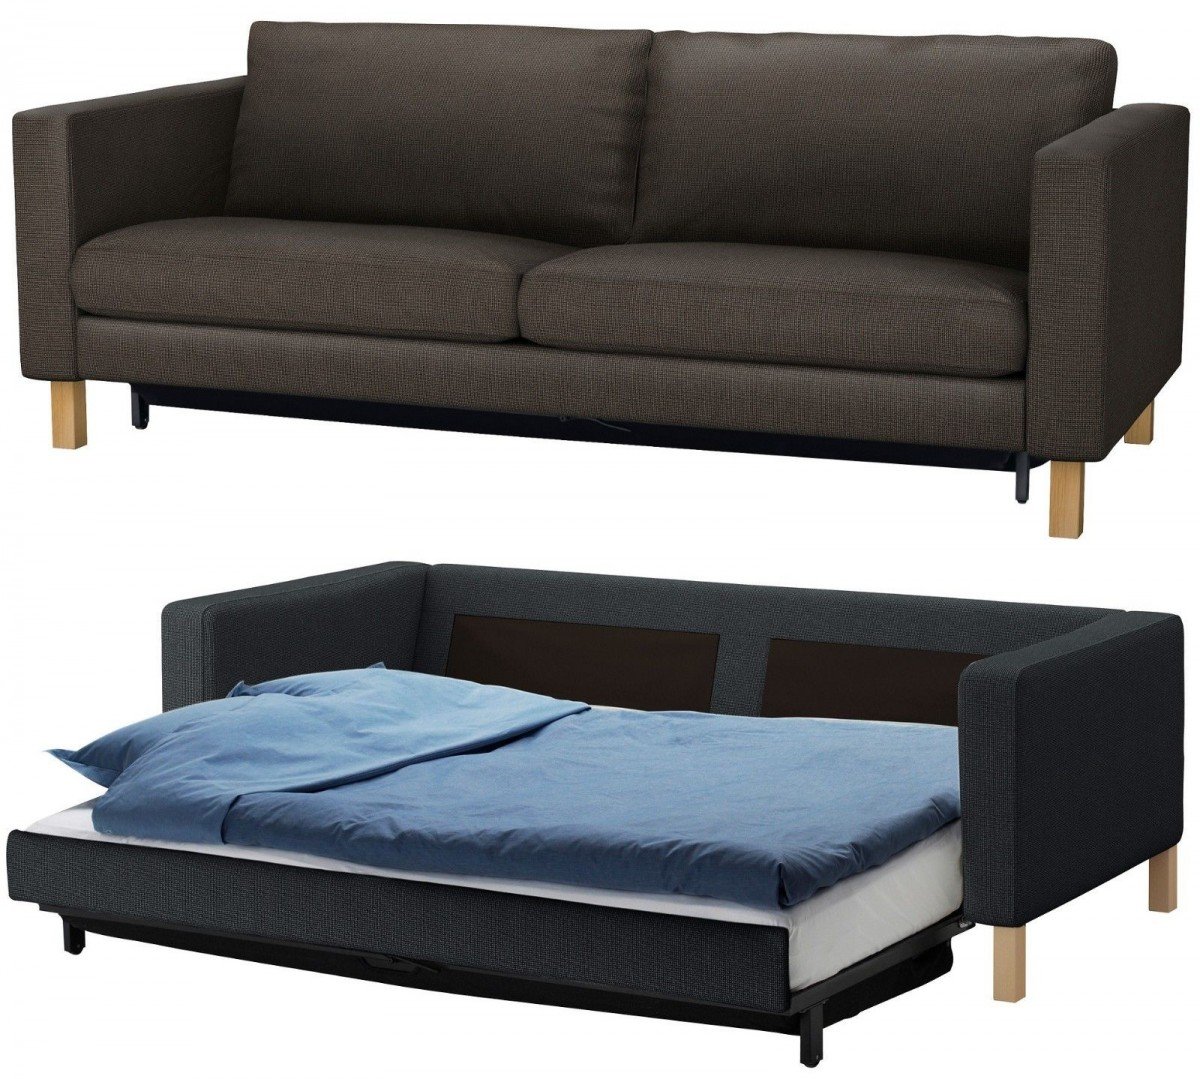 Best Ikea Futon Home Decor